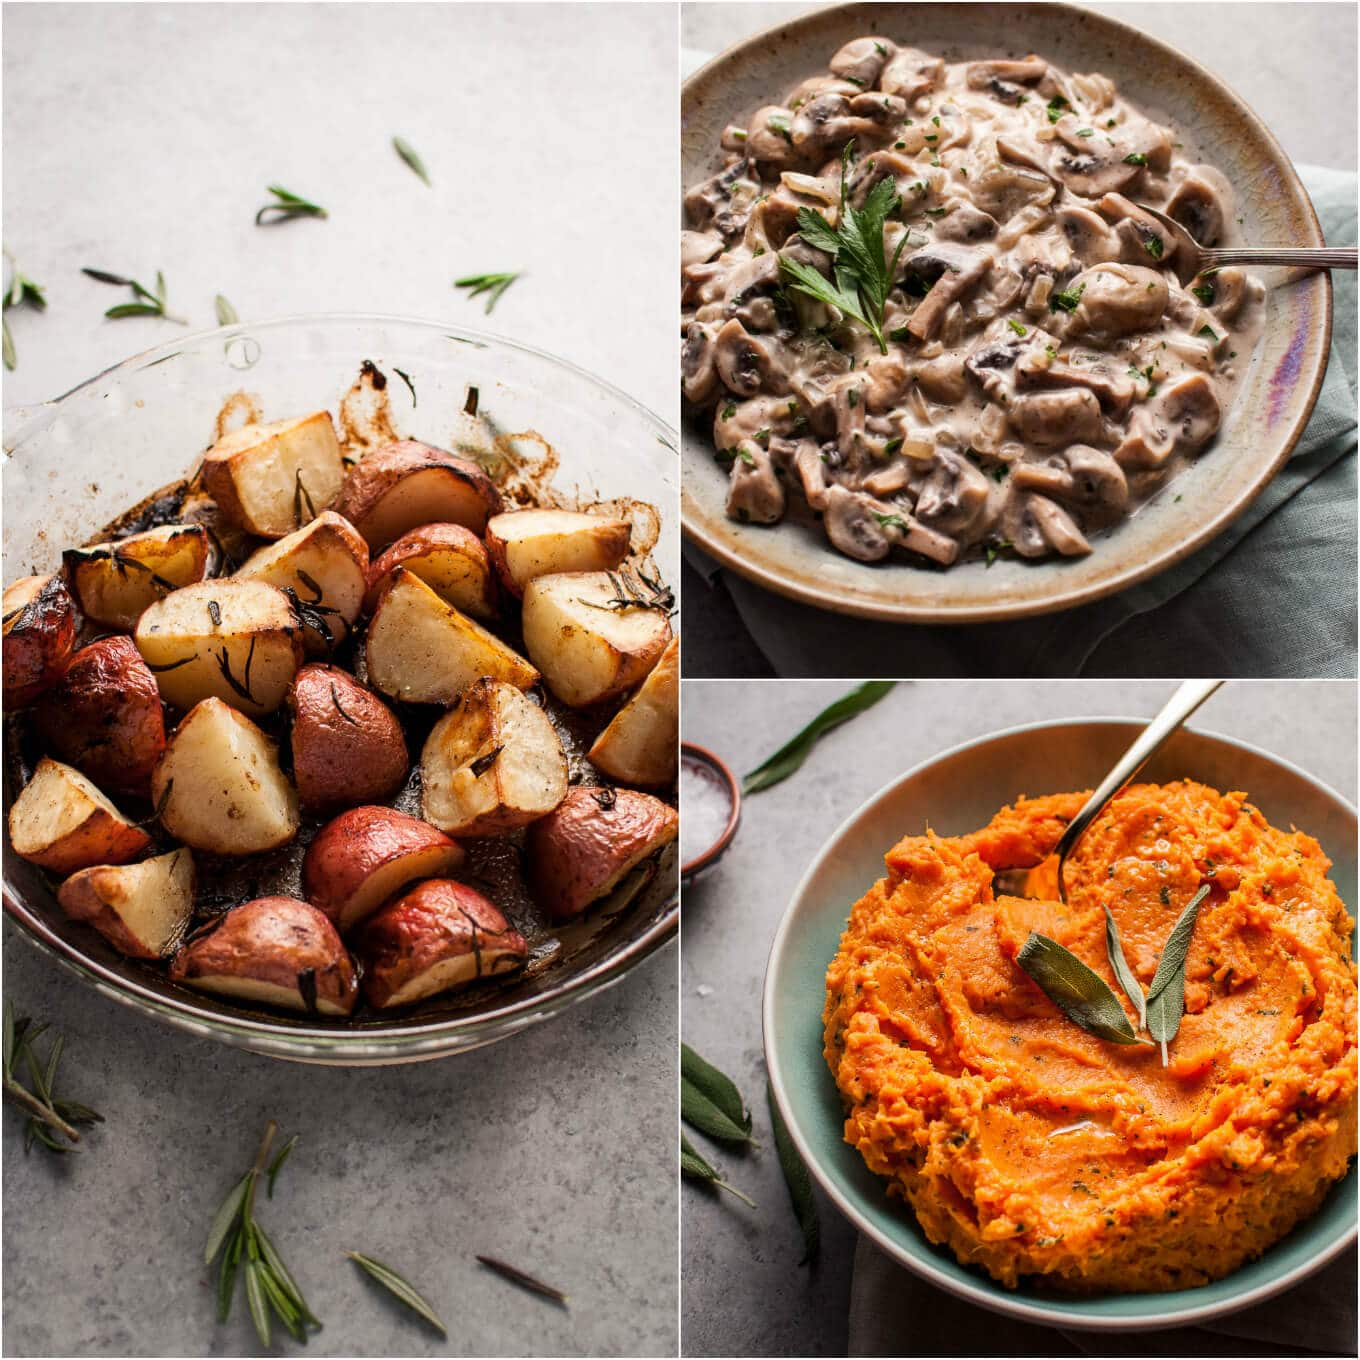 Mushroom Side Dishes, Potato Side Dishes, Vegetable Side Dishes, Vegetable Recipes, Mushroom Dish, Vegetarian Recipes, Party Side Dishes, Roasted Potatoes, Roasted Vegetables Find this Pin and more on B I T E S by Jessica James Rabins Western Artist.